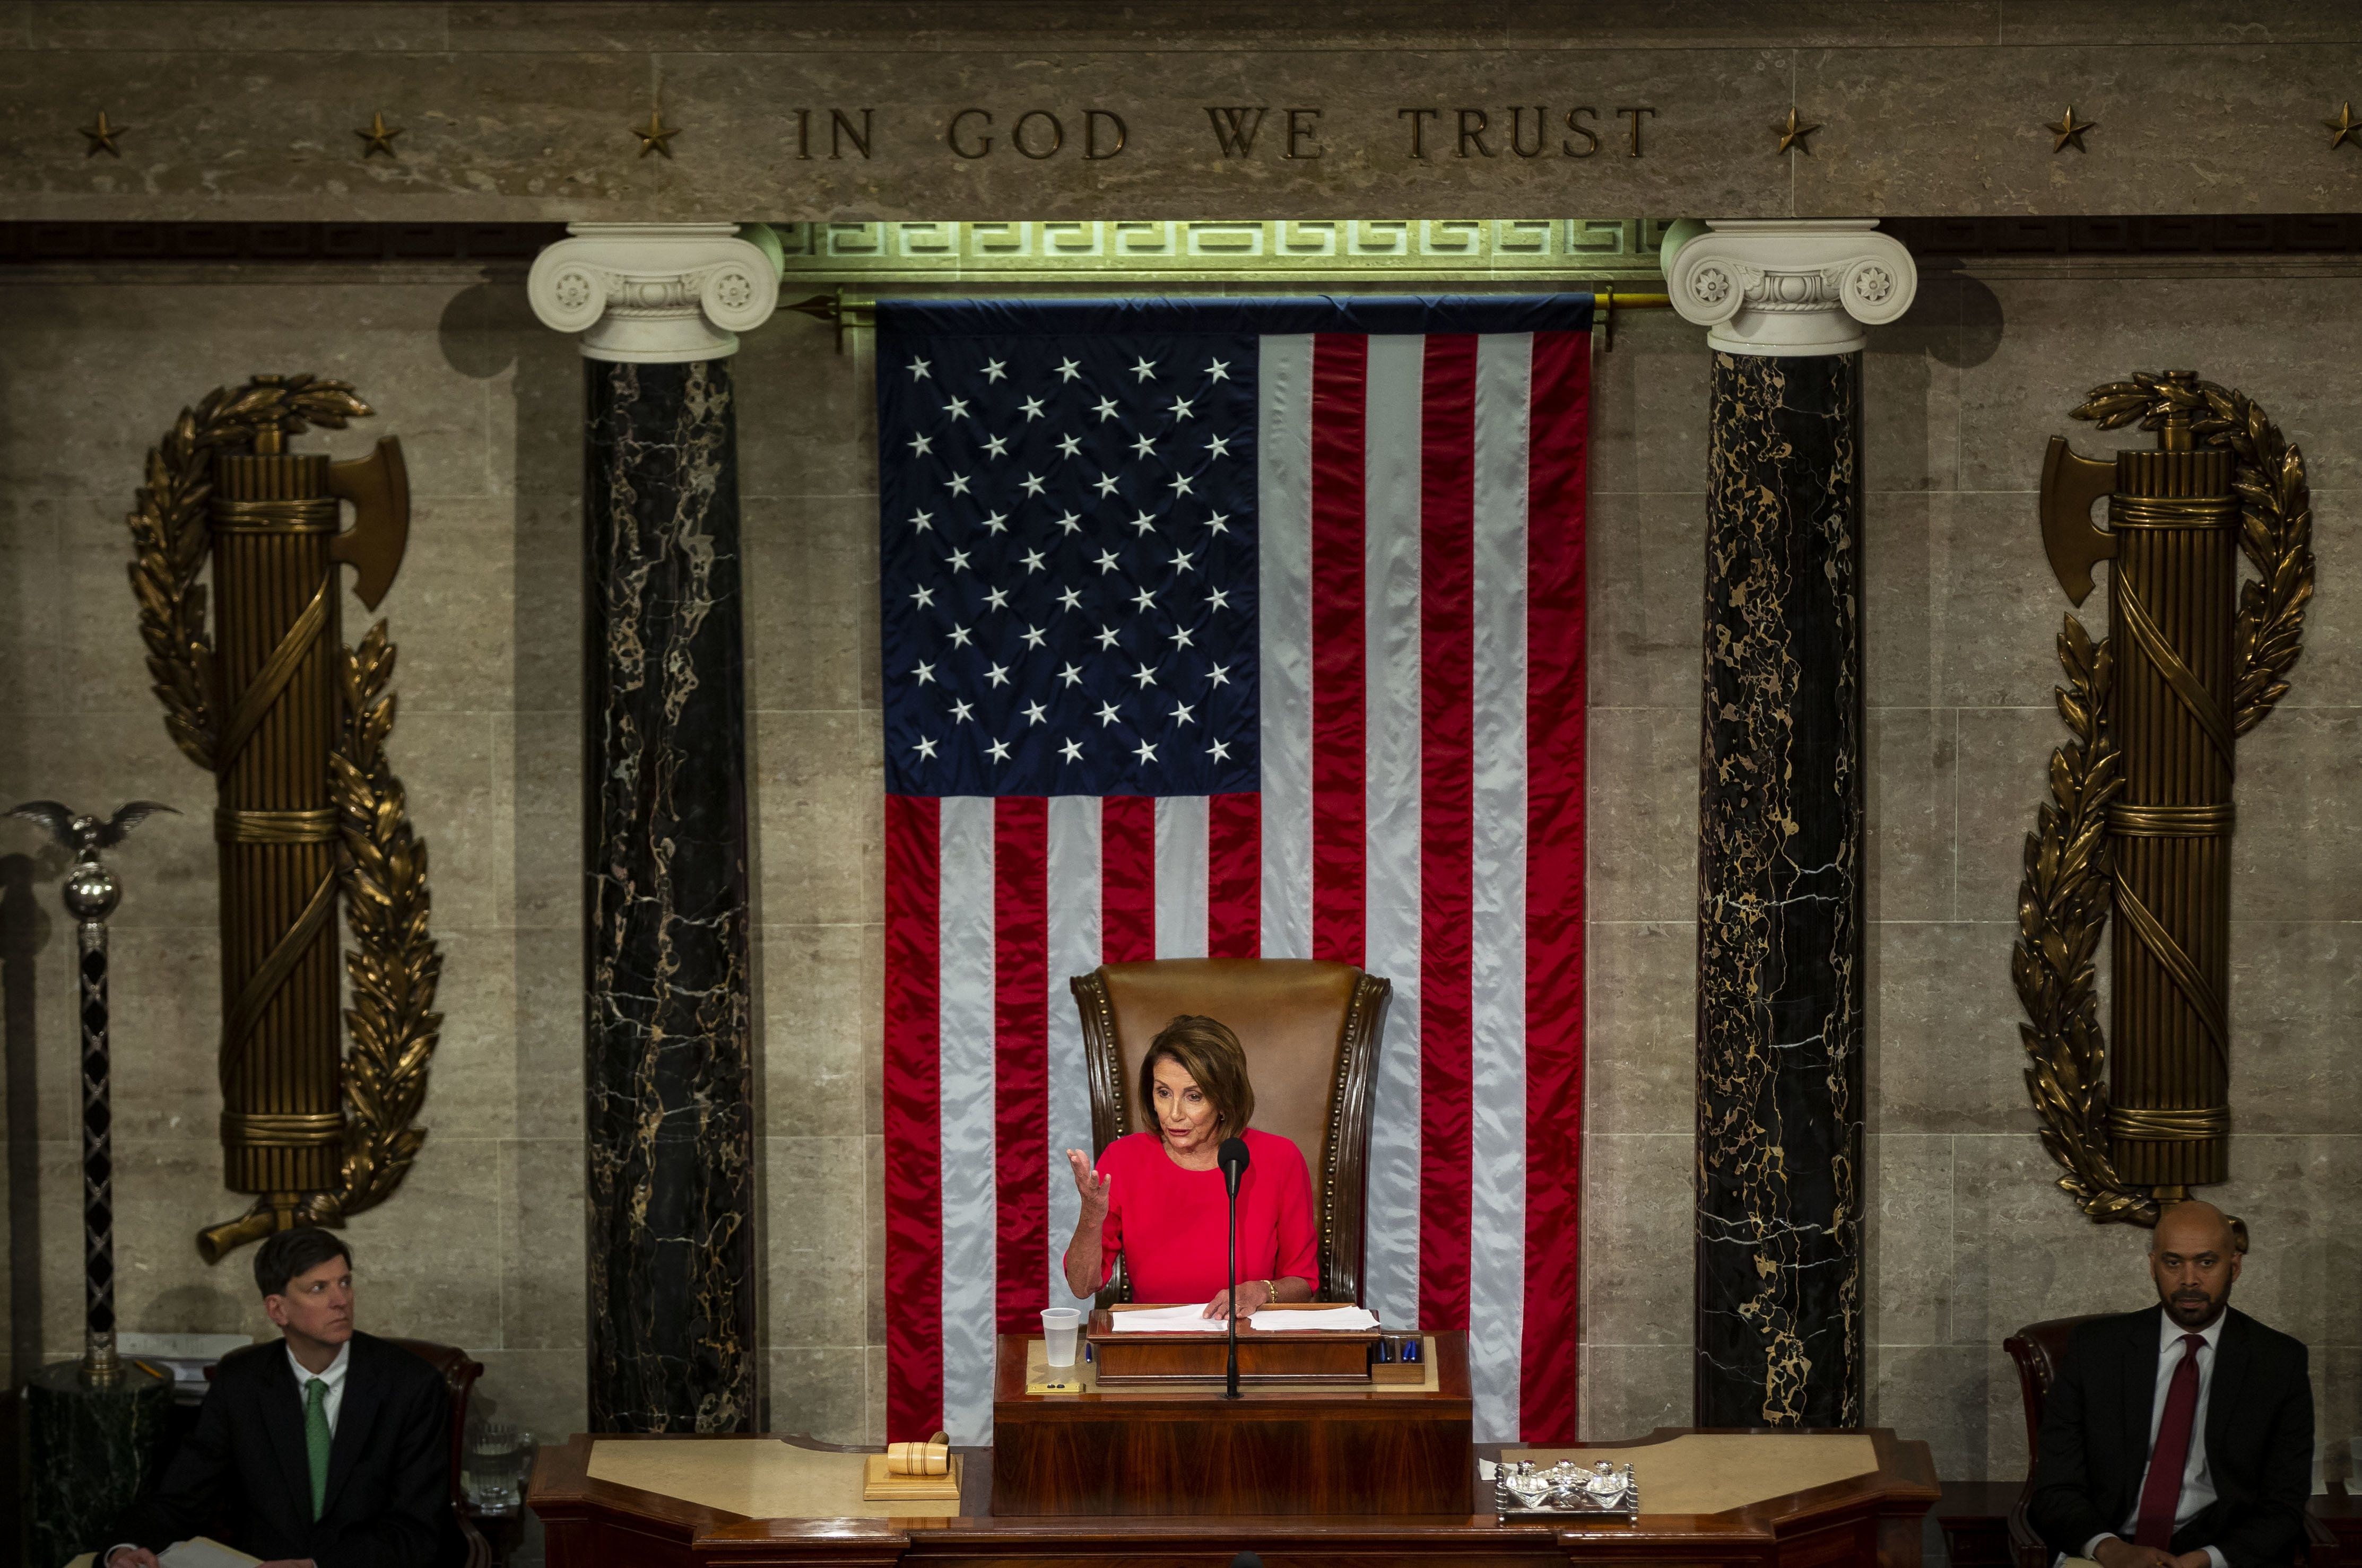 U.S. House Speaker Nancy Pelosi, a Democrat from California, speaks during the opening of the 116th Congress in the House Chamber in Washington, D.C., U.S., on Thursday, Jan. 3, 2019. Pelosiwas elected speaker of the House of Representatives in a triumphant return to the post as Democrats took power Thursday with the authority to investigate PresidentDonald Trumpand perhaps begin impeachment proceedings. Photographer: Al Drago/Bloomberg via Getty Images